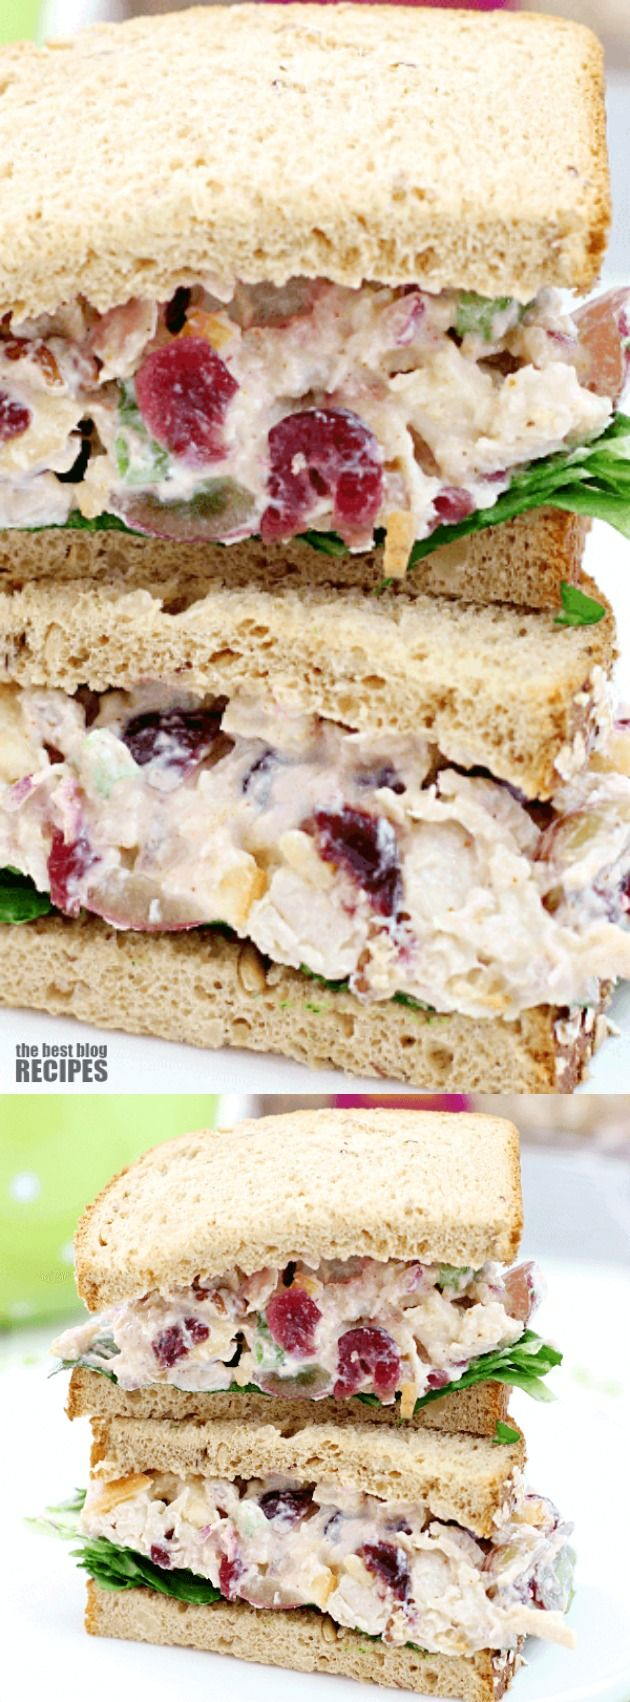 This Lighter Chicken Salad Sandwich from Love Bakes Good Cakes is the perfect recipe for a light lunch or dinner, or even as a lunchbox meal for those busy days.